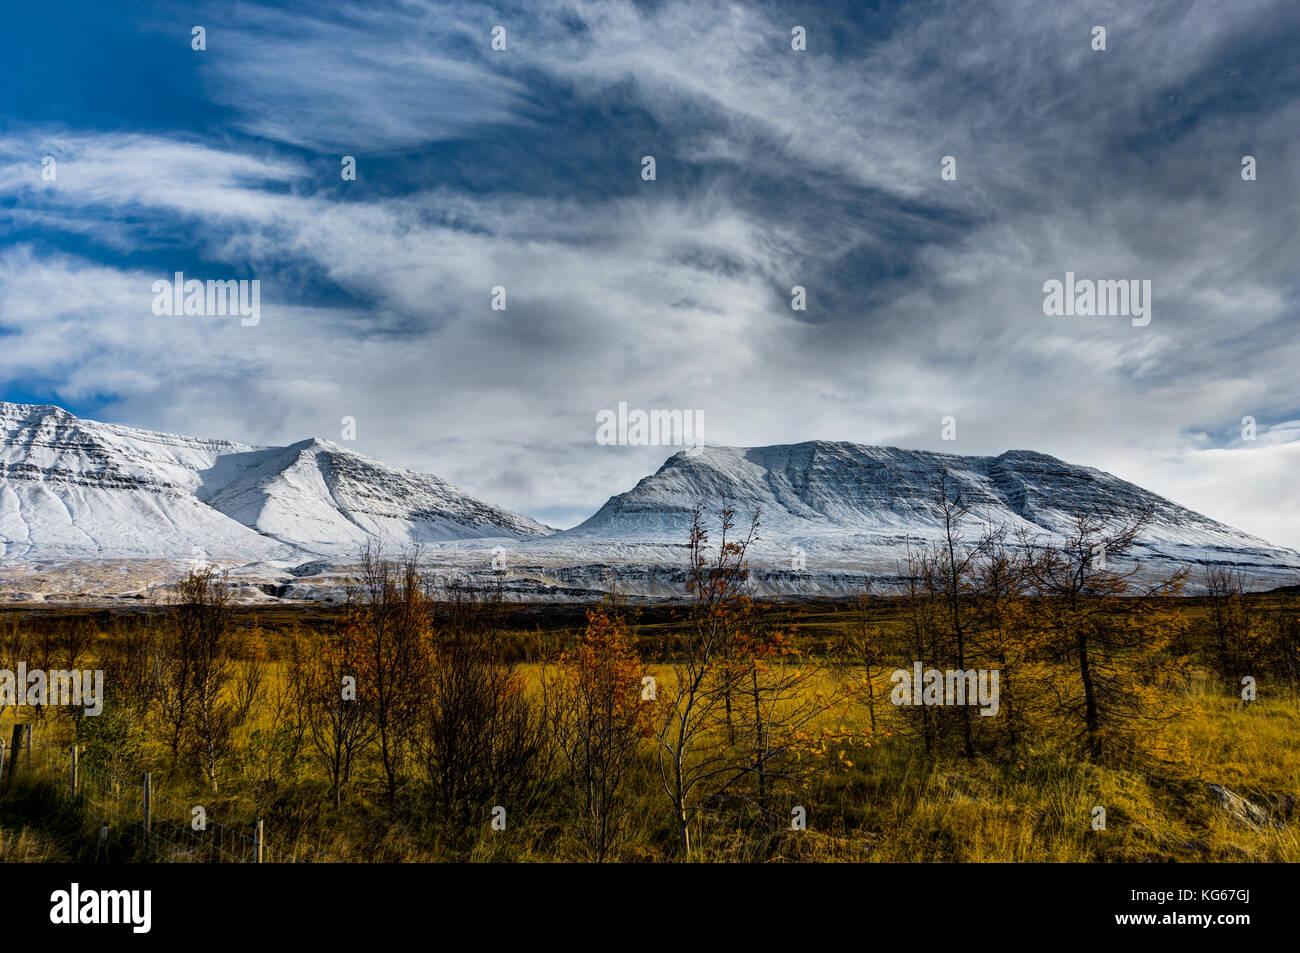 Winter in the mountains. Christmas landscape on a sunny morning. - Stock Image